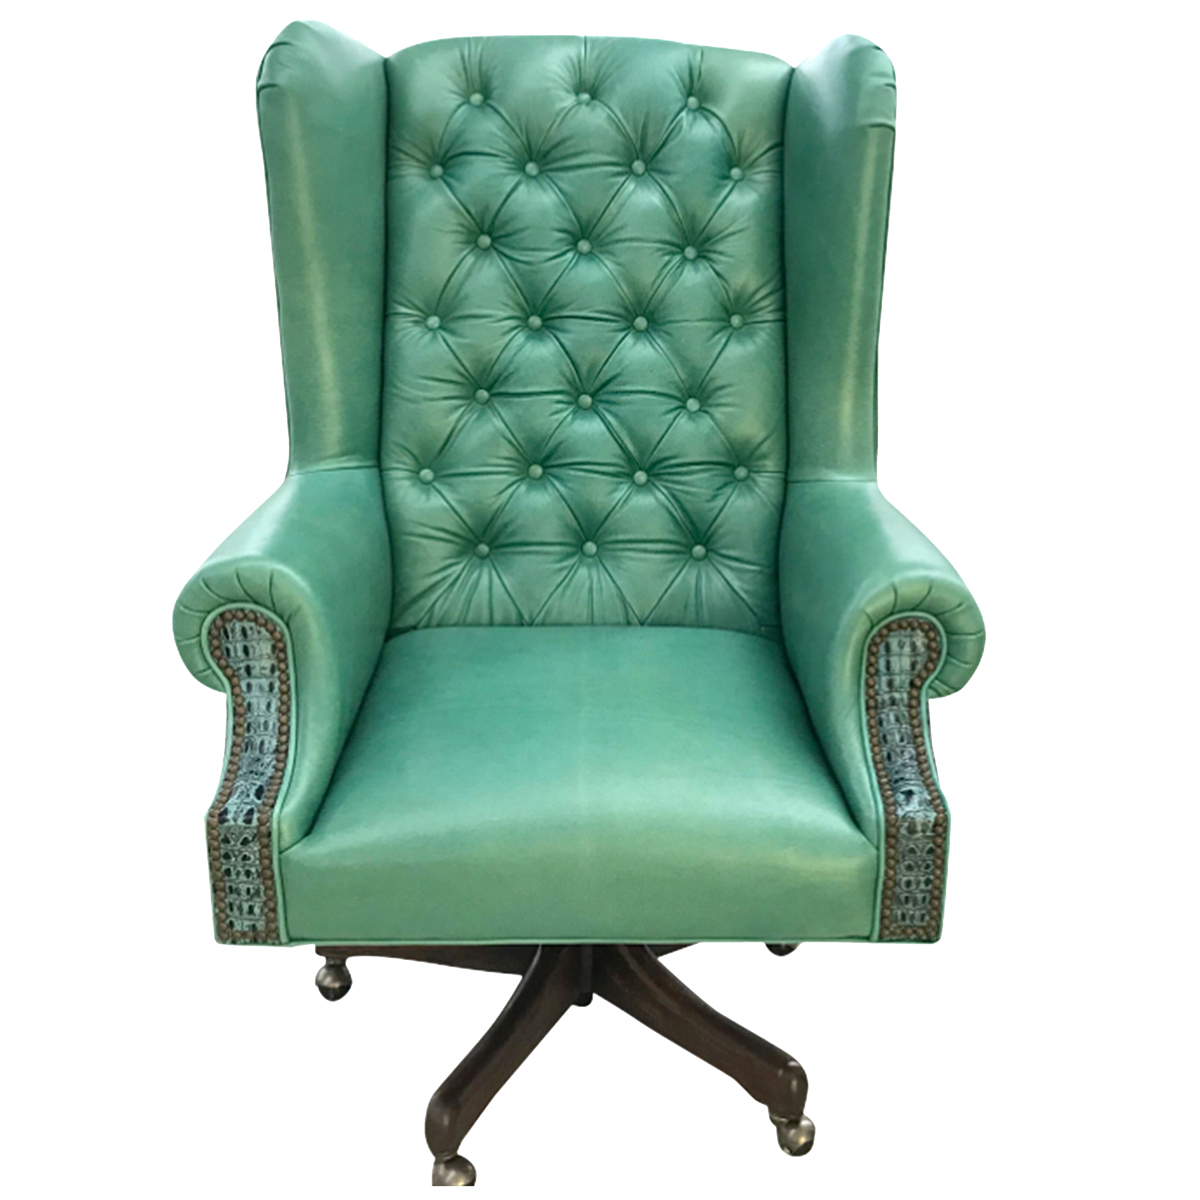 Turquoise Canyon Executive Chair